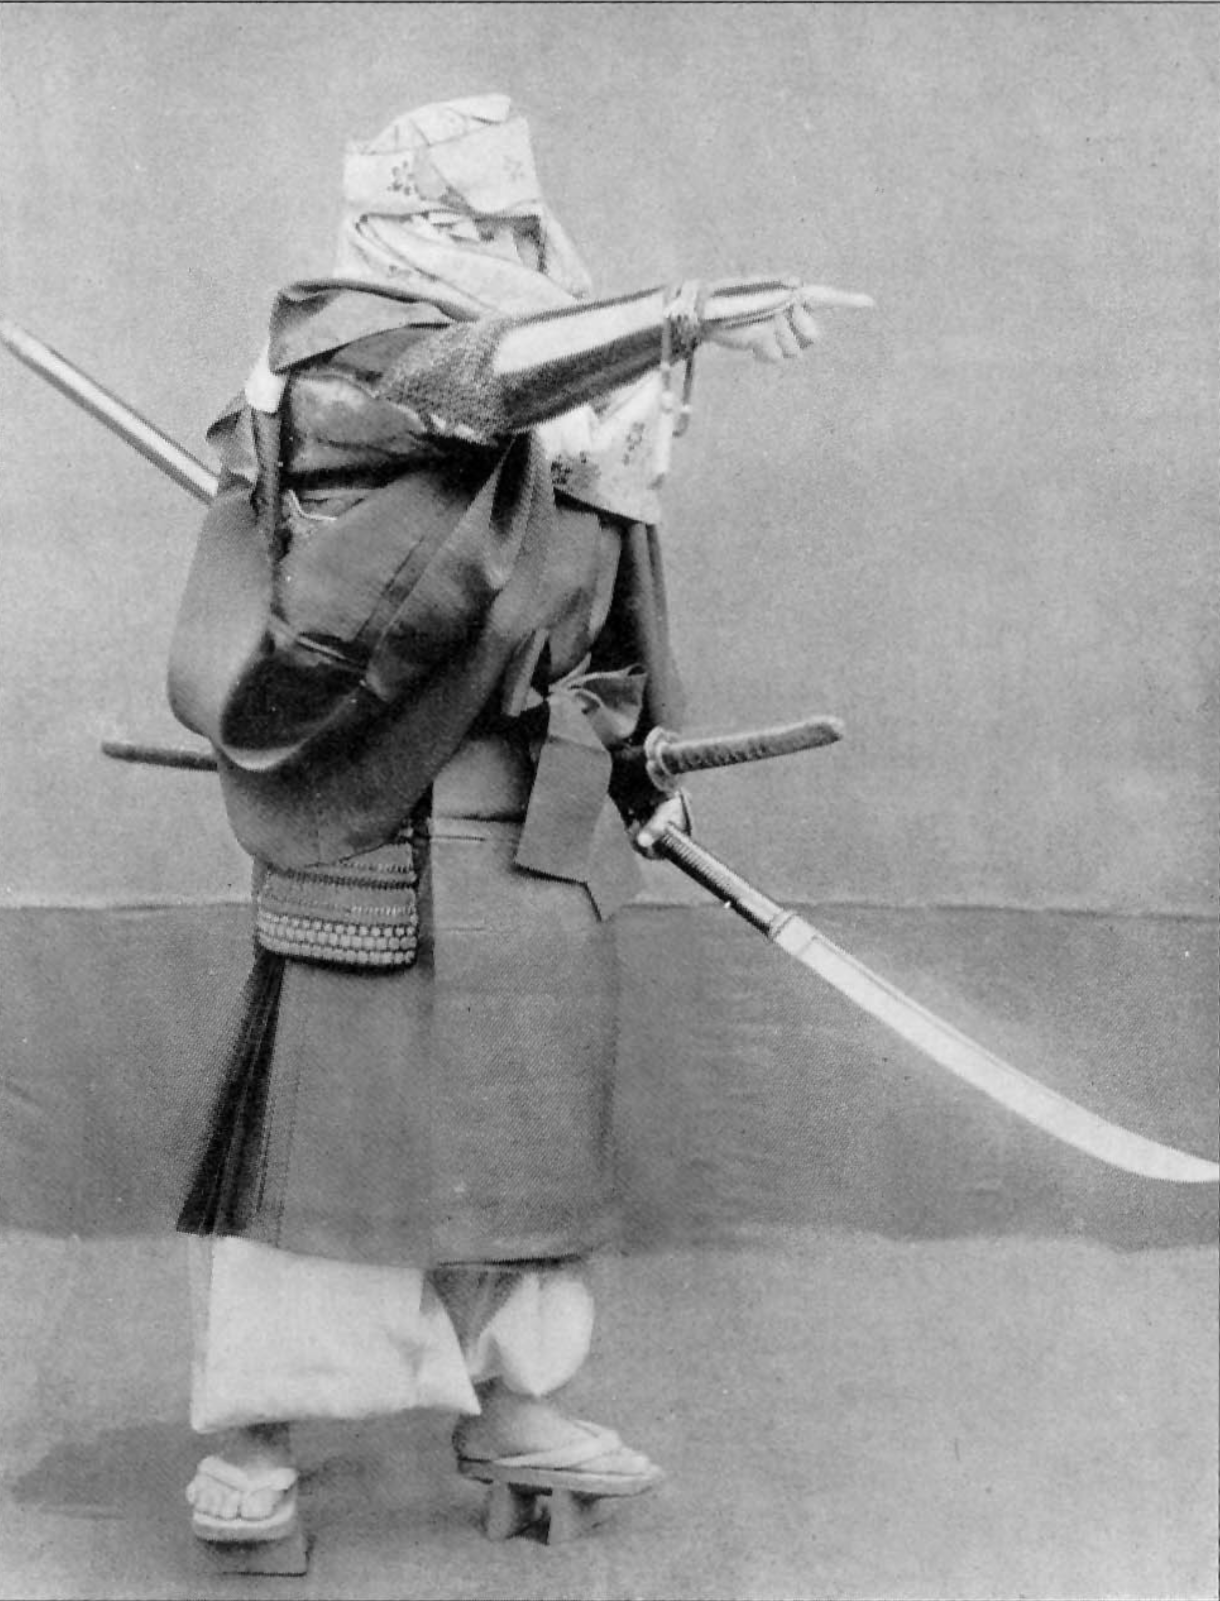 A 19th-century photo of a Japanese warrior monk. Maybe it's a reenactor?